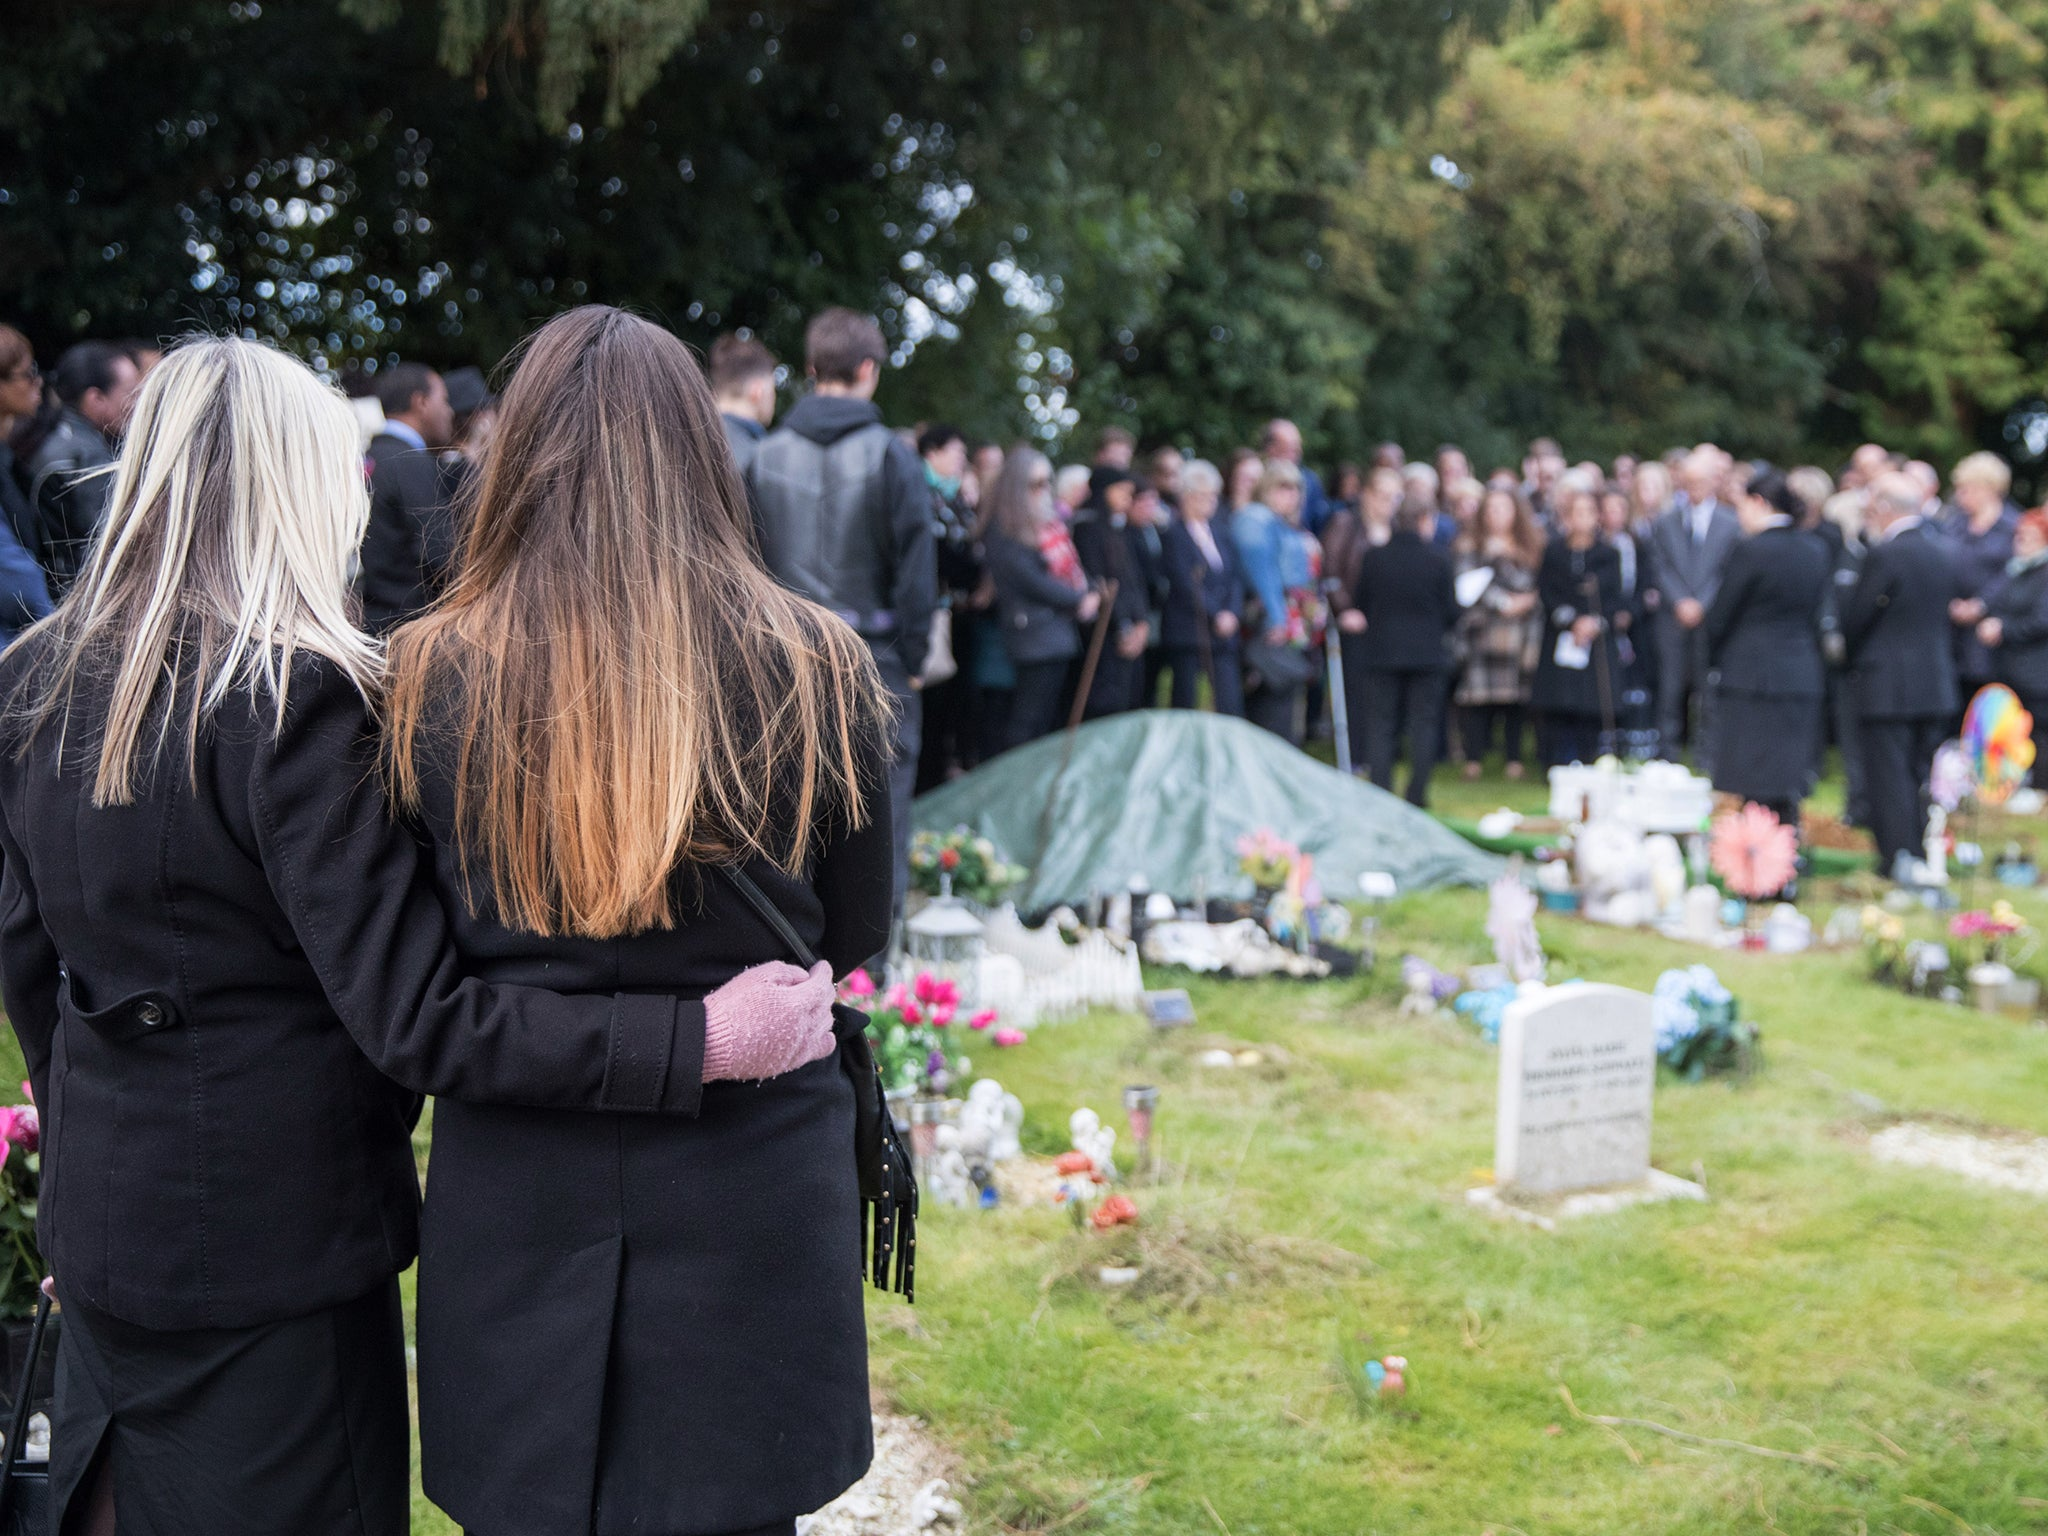 Hundreds of mourners attend open funeral for unknown baby girl in hundreds of mourners attend open funeral for unknown baby girl in oxford the independent izmirmasajfo